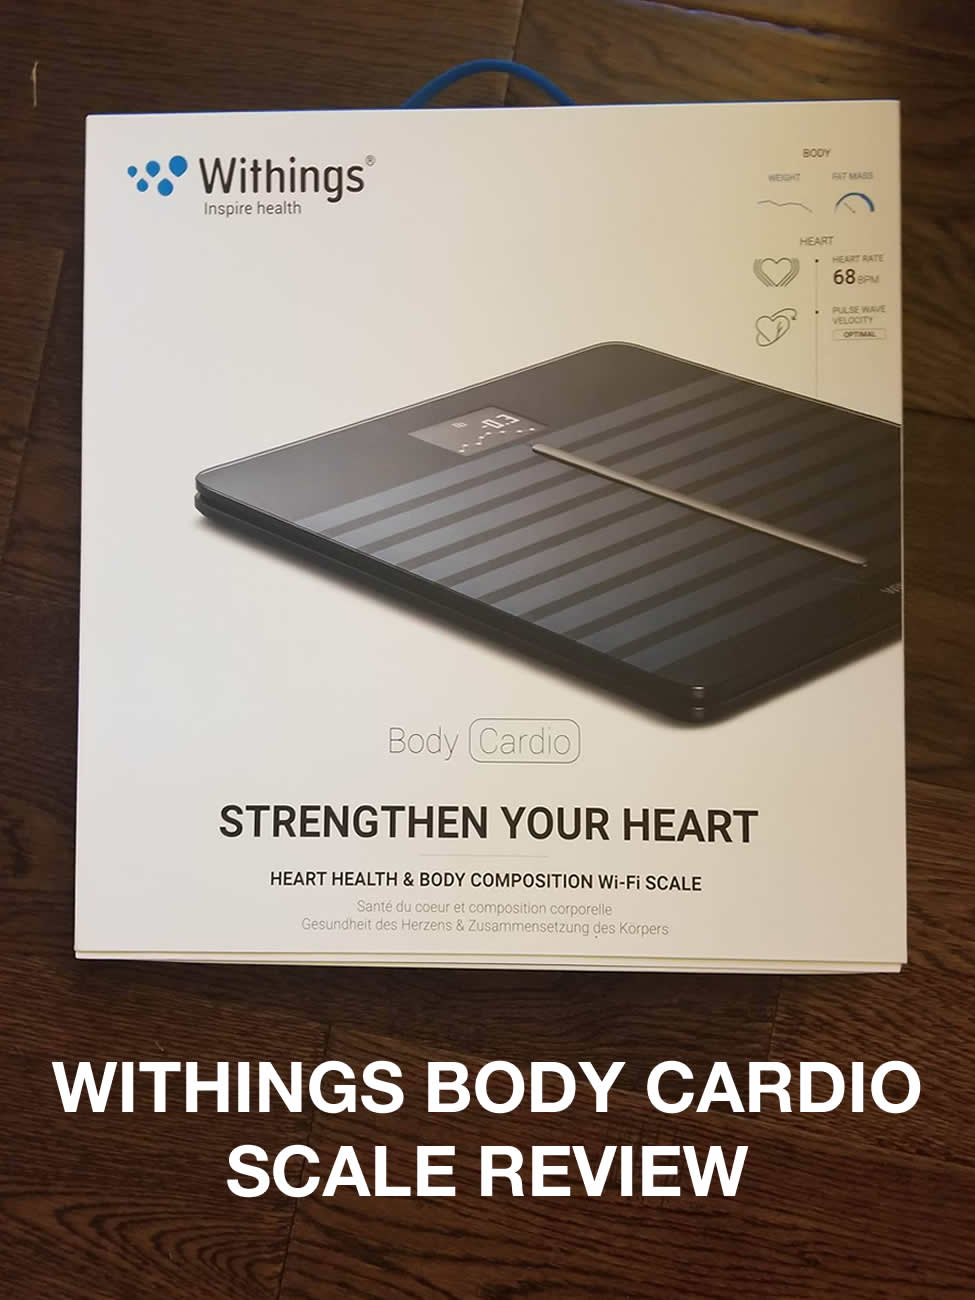 Withings Body Cardio Scale >> Withings Body Cardio Scale Review - Fancy Scale - Ton of Function!